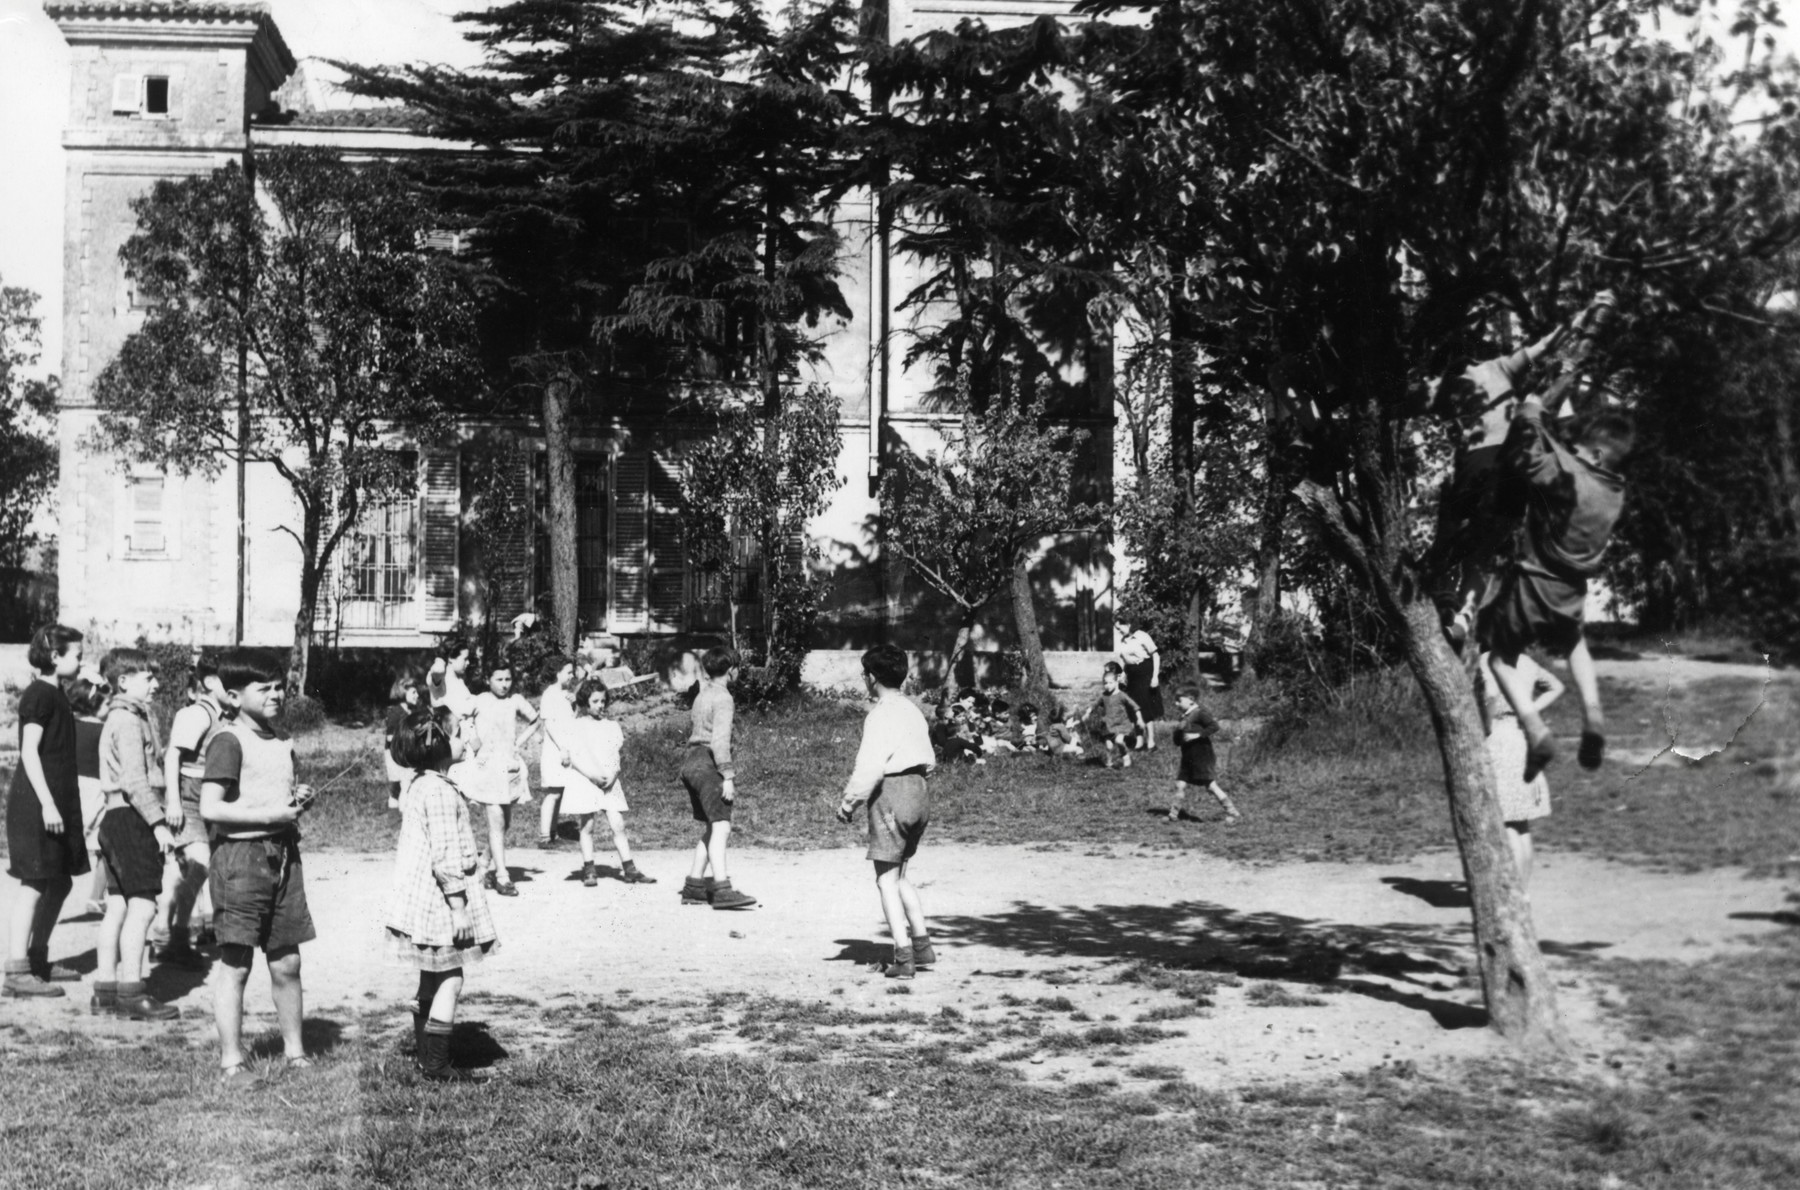 Children play in the field at Chateau de Larade.